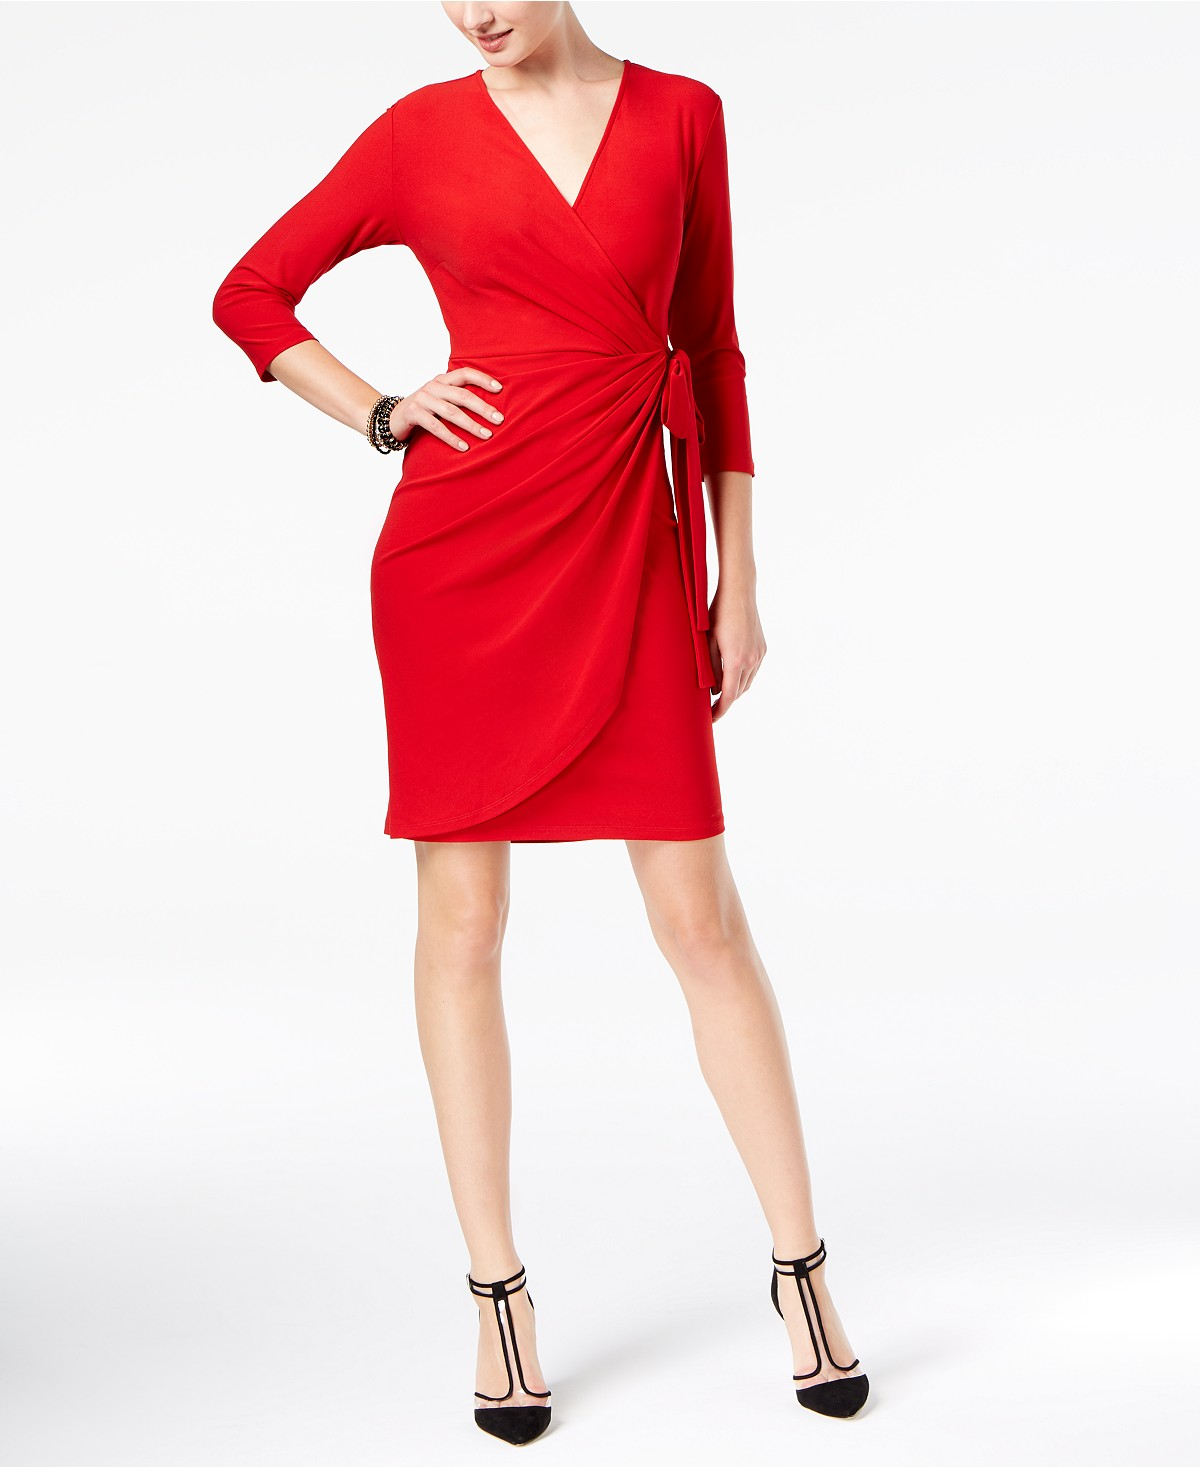 1e732fd4e76d Red Cocktail Dress At Macys - Barrier Surveillance